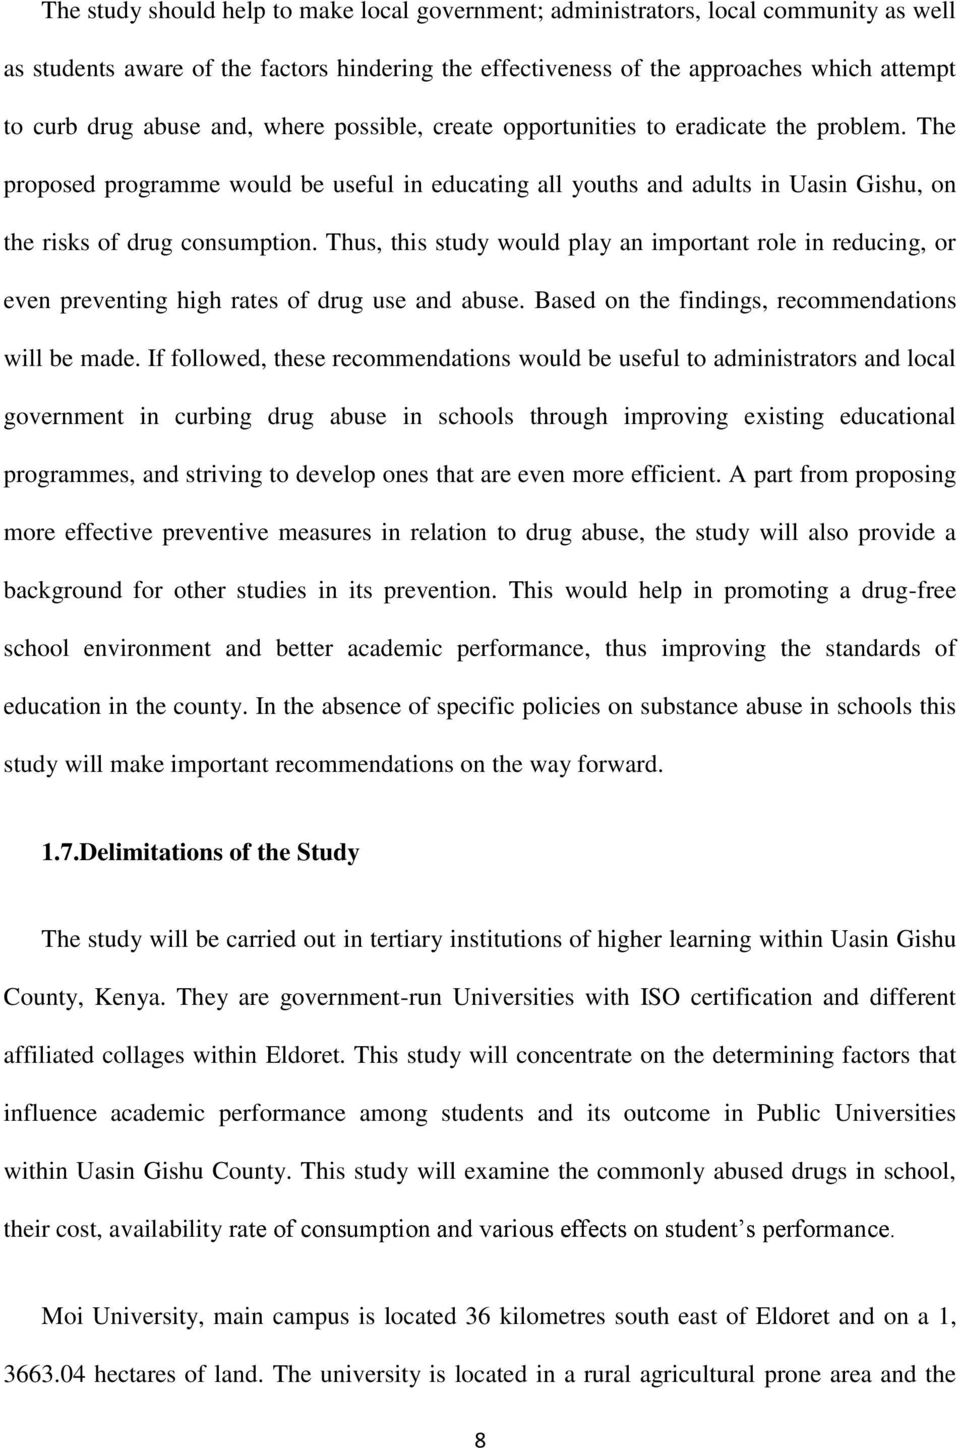 Essay on ethics and religion